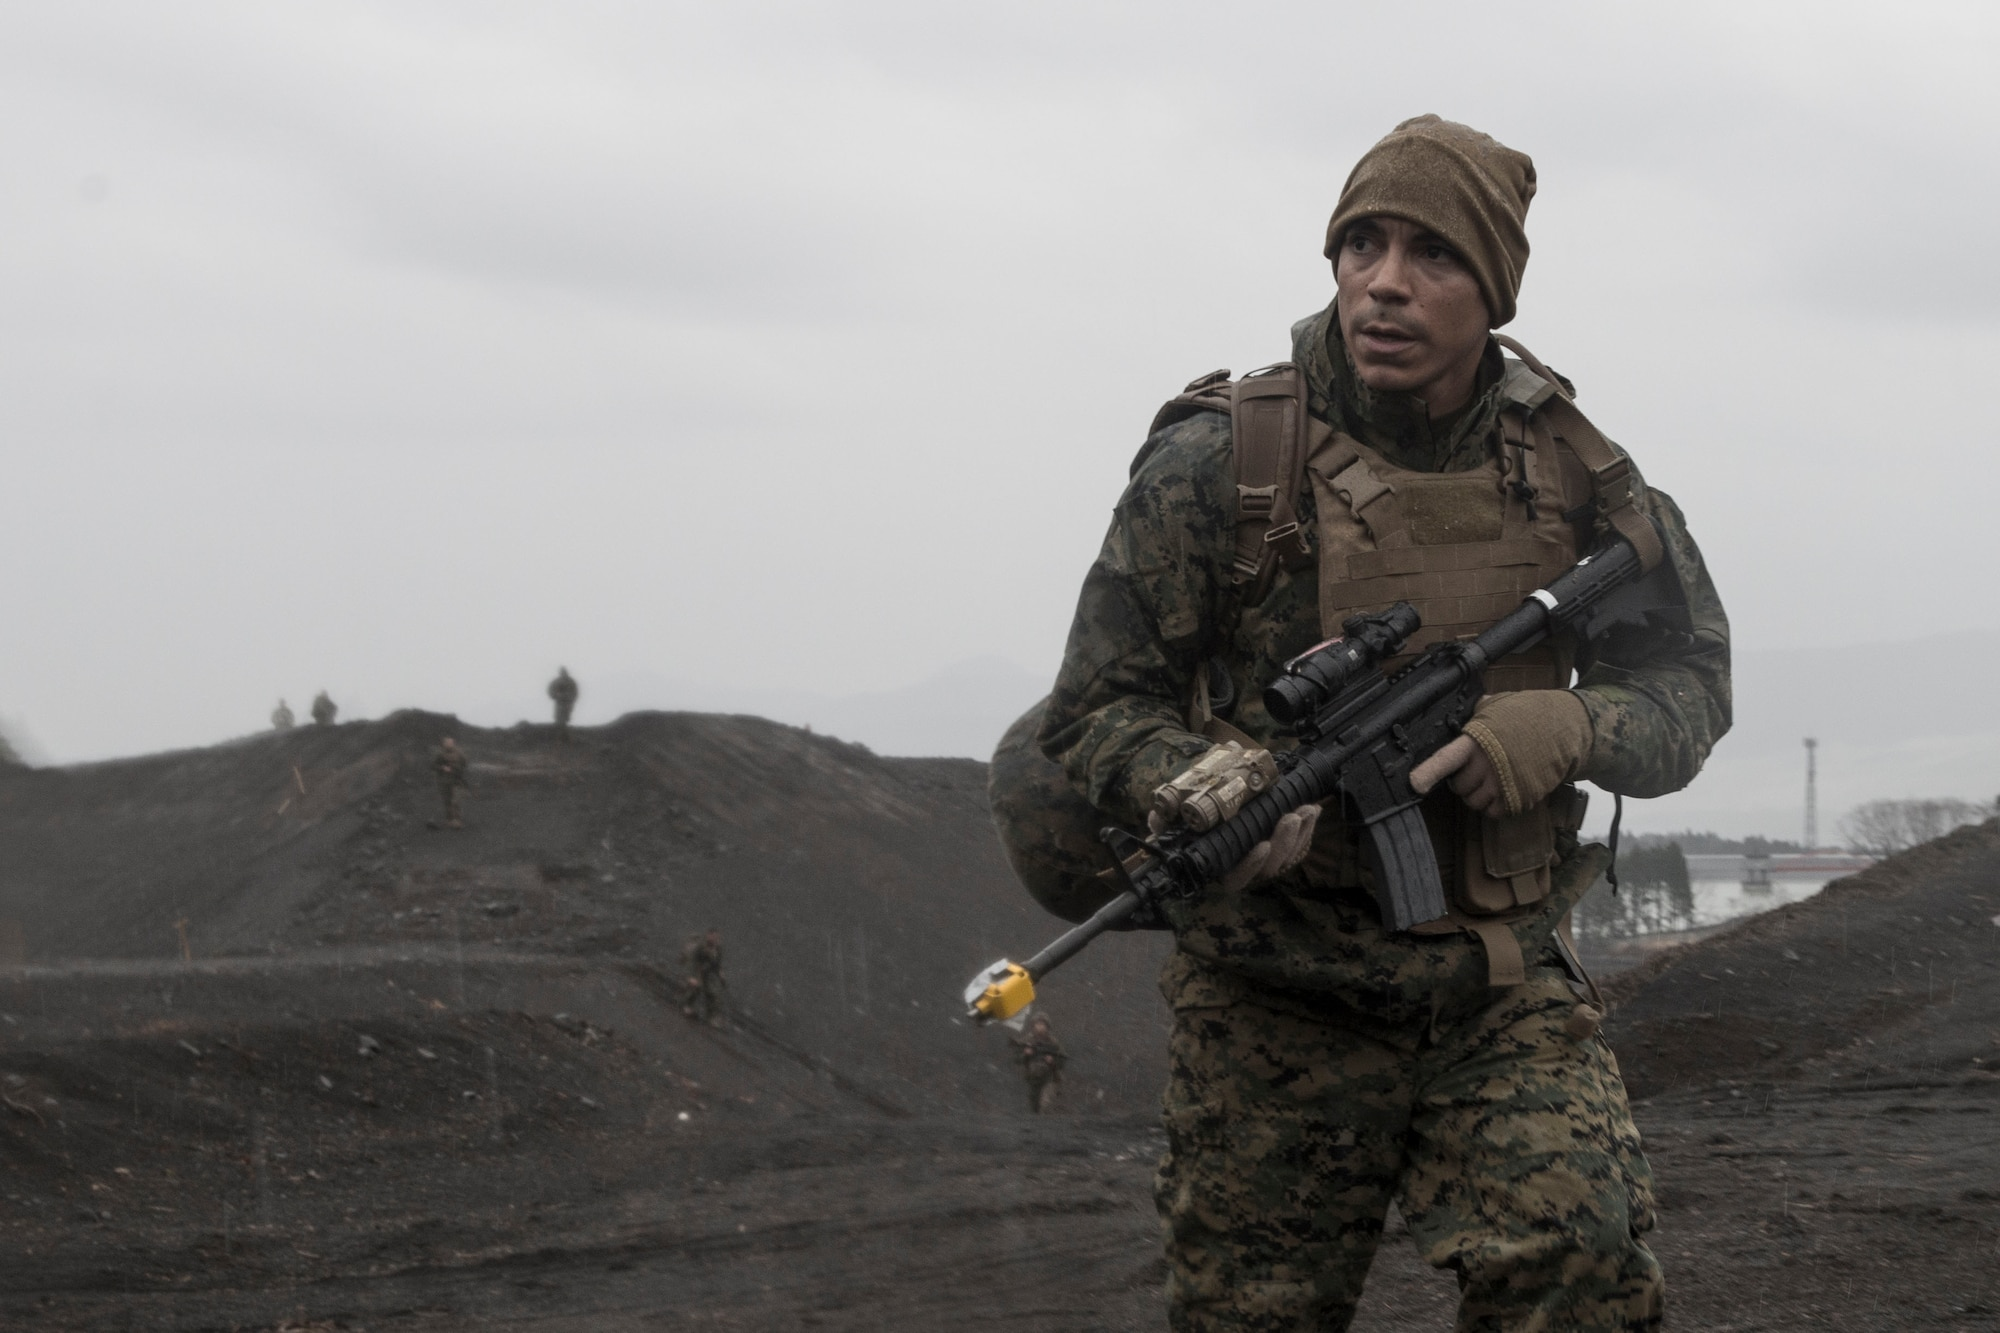 A Marine with the 1st Batallion, 1st Marines, scouts for aircrew during joint training Jan. 16, 2015 at Camp Fuji, Japan. Marines and Sailors acted as enemy aggressors, practicing their patrolling techniques, while searching for Air Force aircrew, who were simultaneously training their survival, evasion, resistance and escape techniques. (U.S. Air Force photo/Staff Sgt. Cody H. Ramirez)